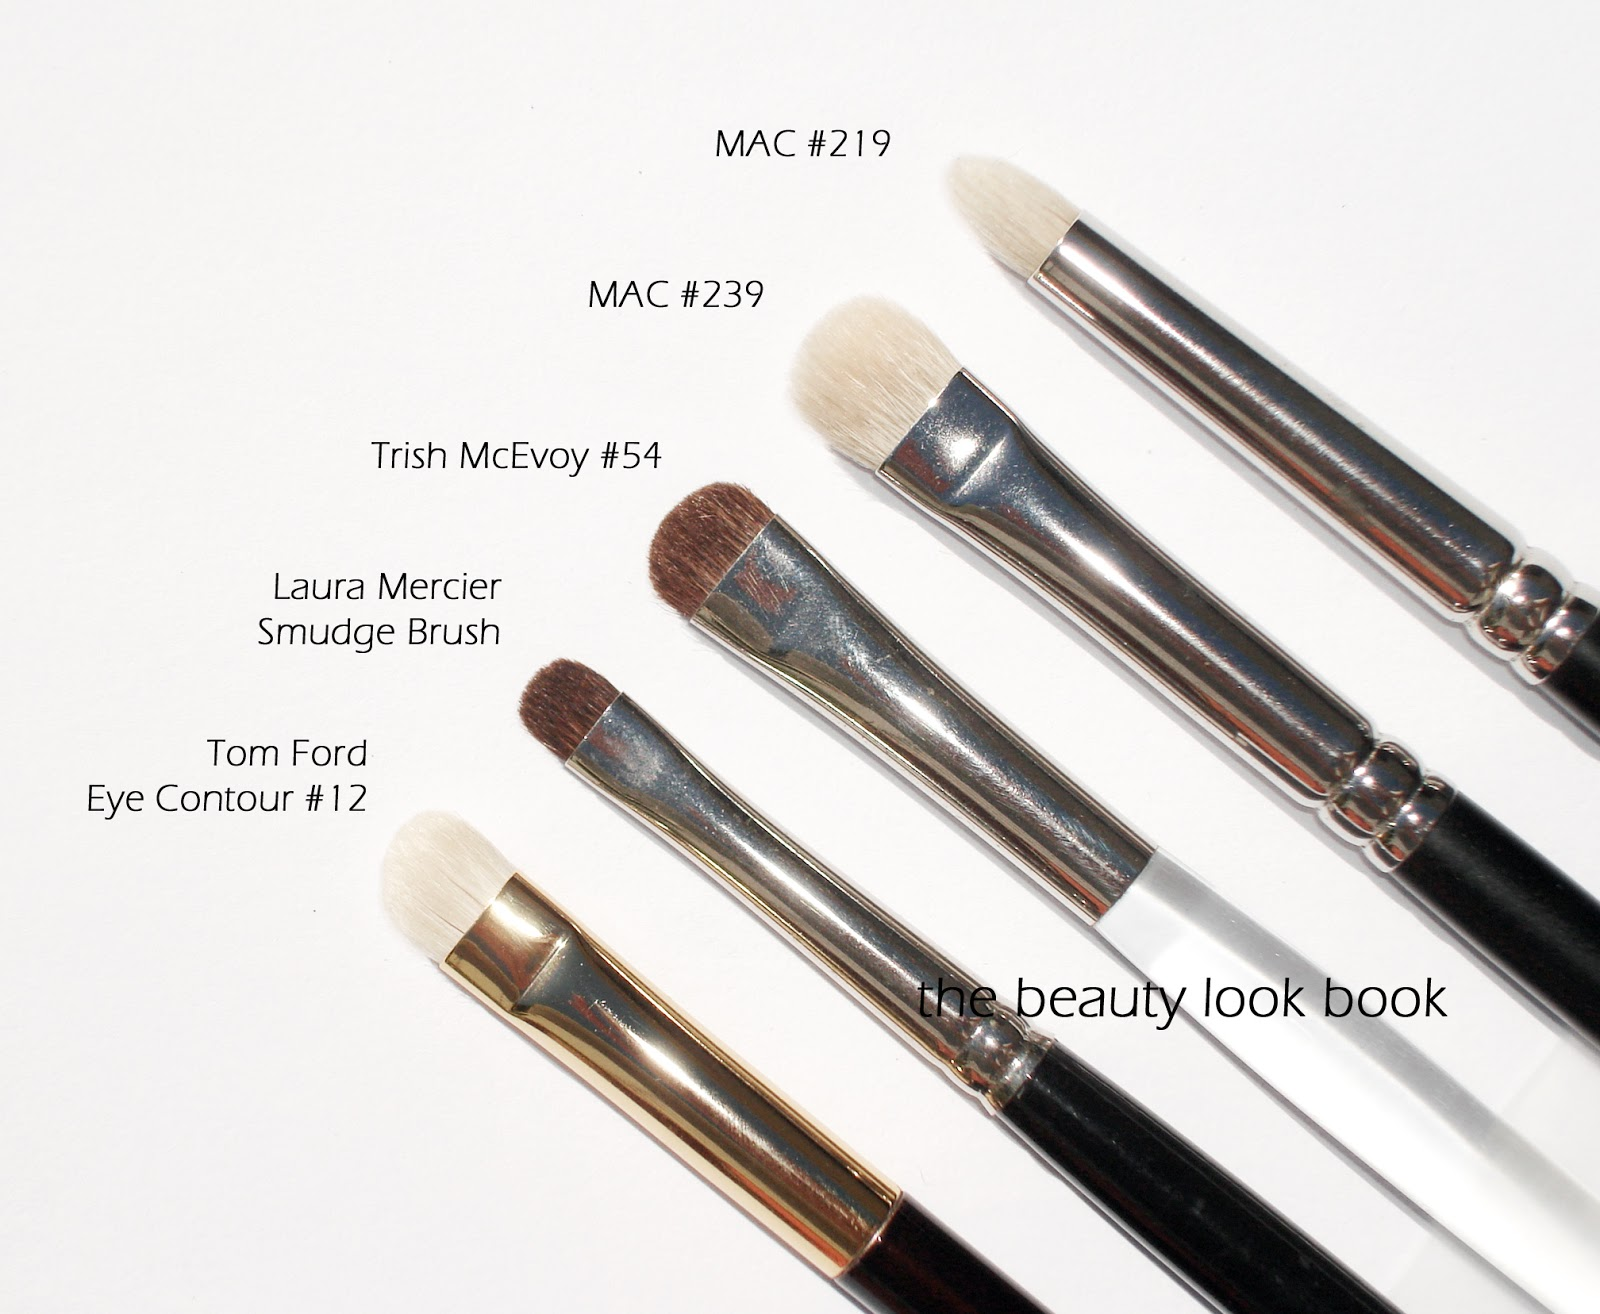 Tom Ford Eye Shadow Contour Brush #12 | The Beauty Look Book